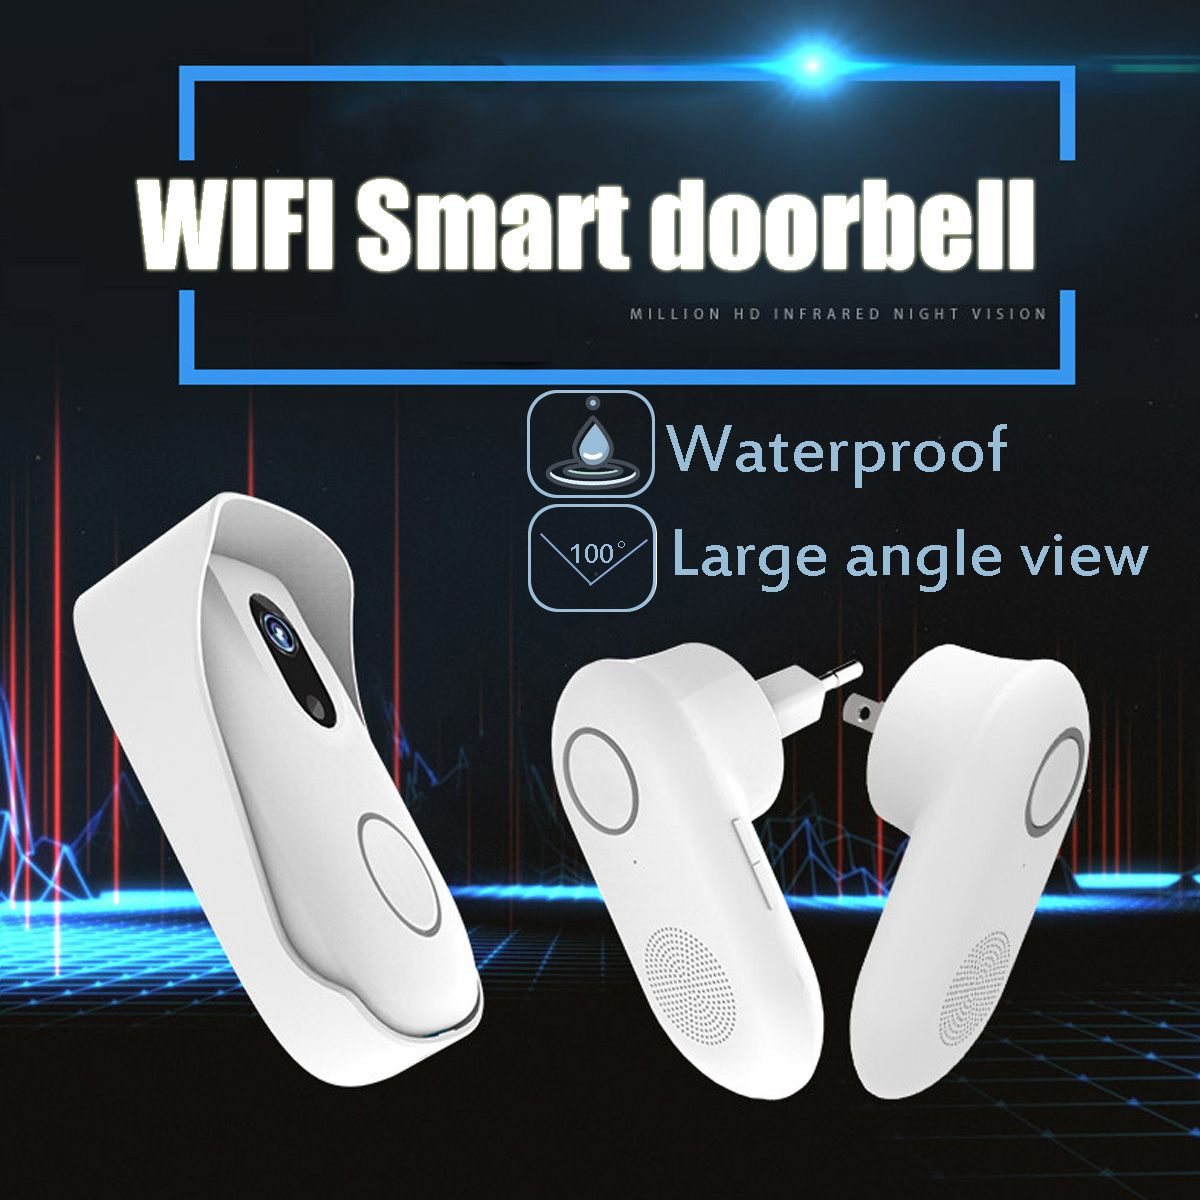 Waterproof Recording Doorbell Wifi RF TransmissionWireless Smart Door Bell Phone Burglar Alarm Night Vison Doorbell